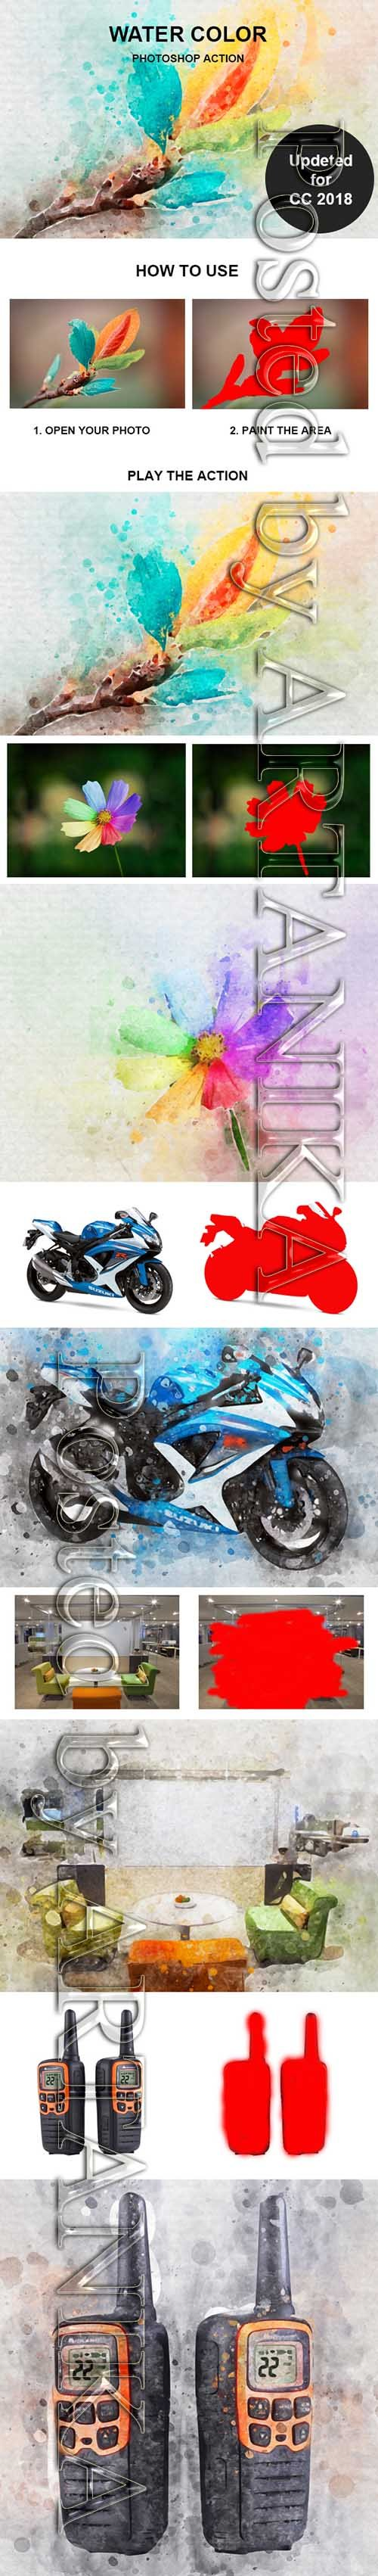 GraphicRiver - Water Color Photoshop Action 21211185